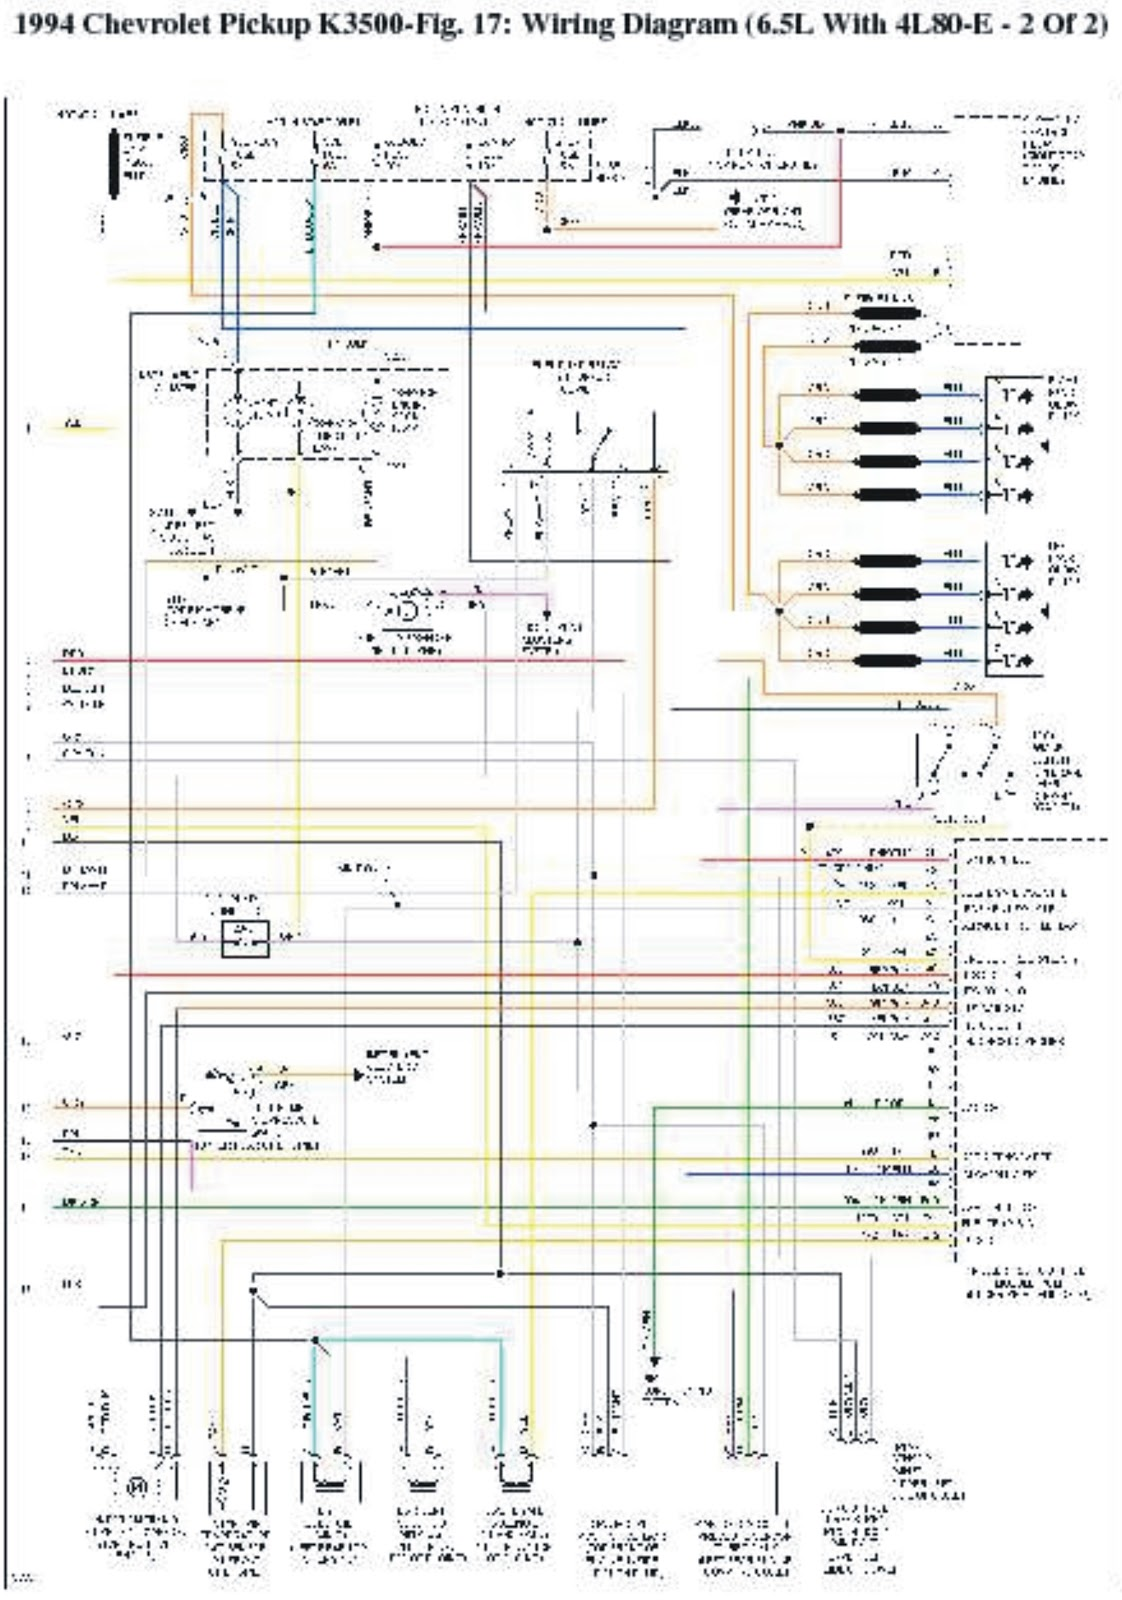 1990 Chevy 1500 Wiring Harness Books Of Diagram Silverado Schematic Gmc Sierra Engine K1500